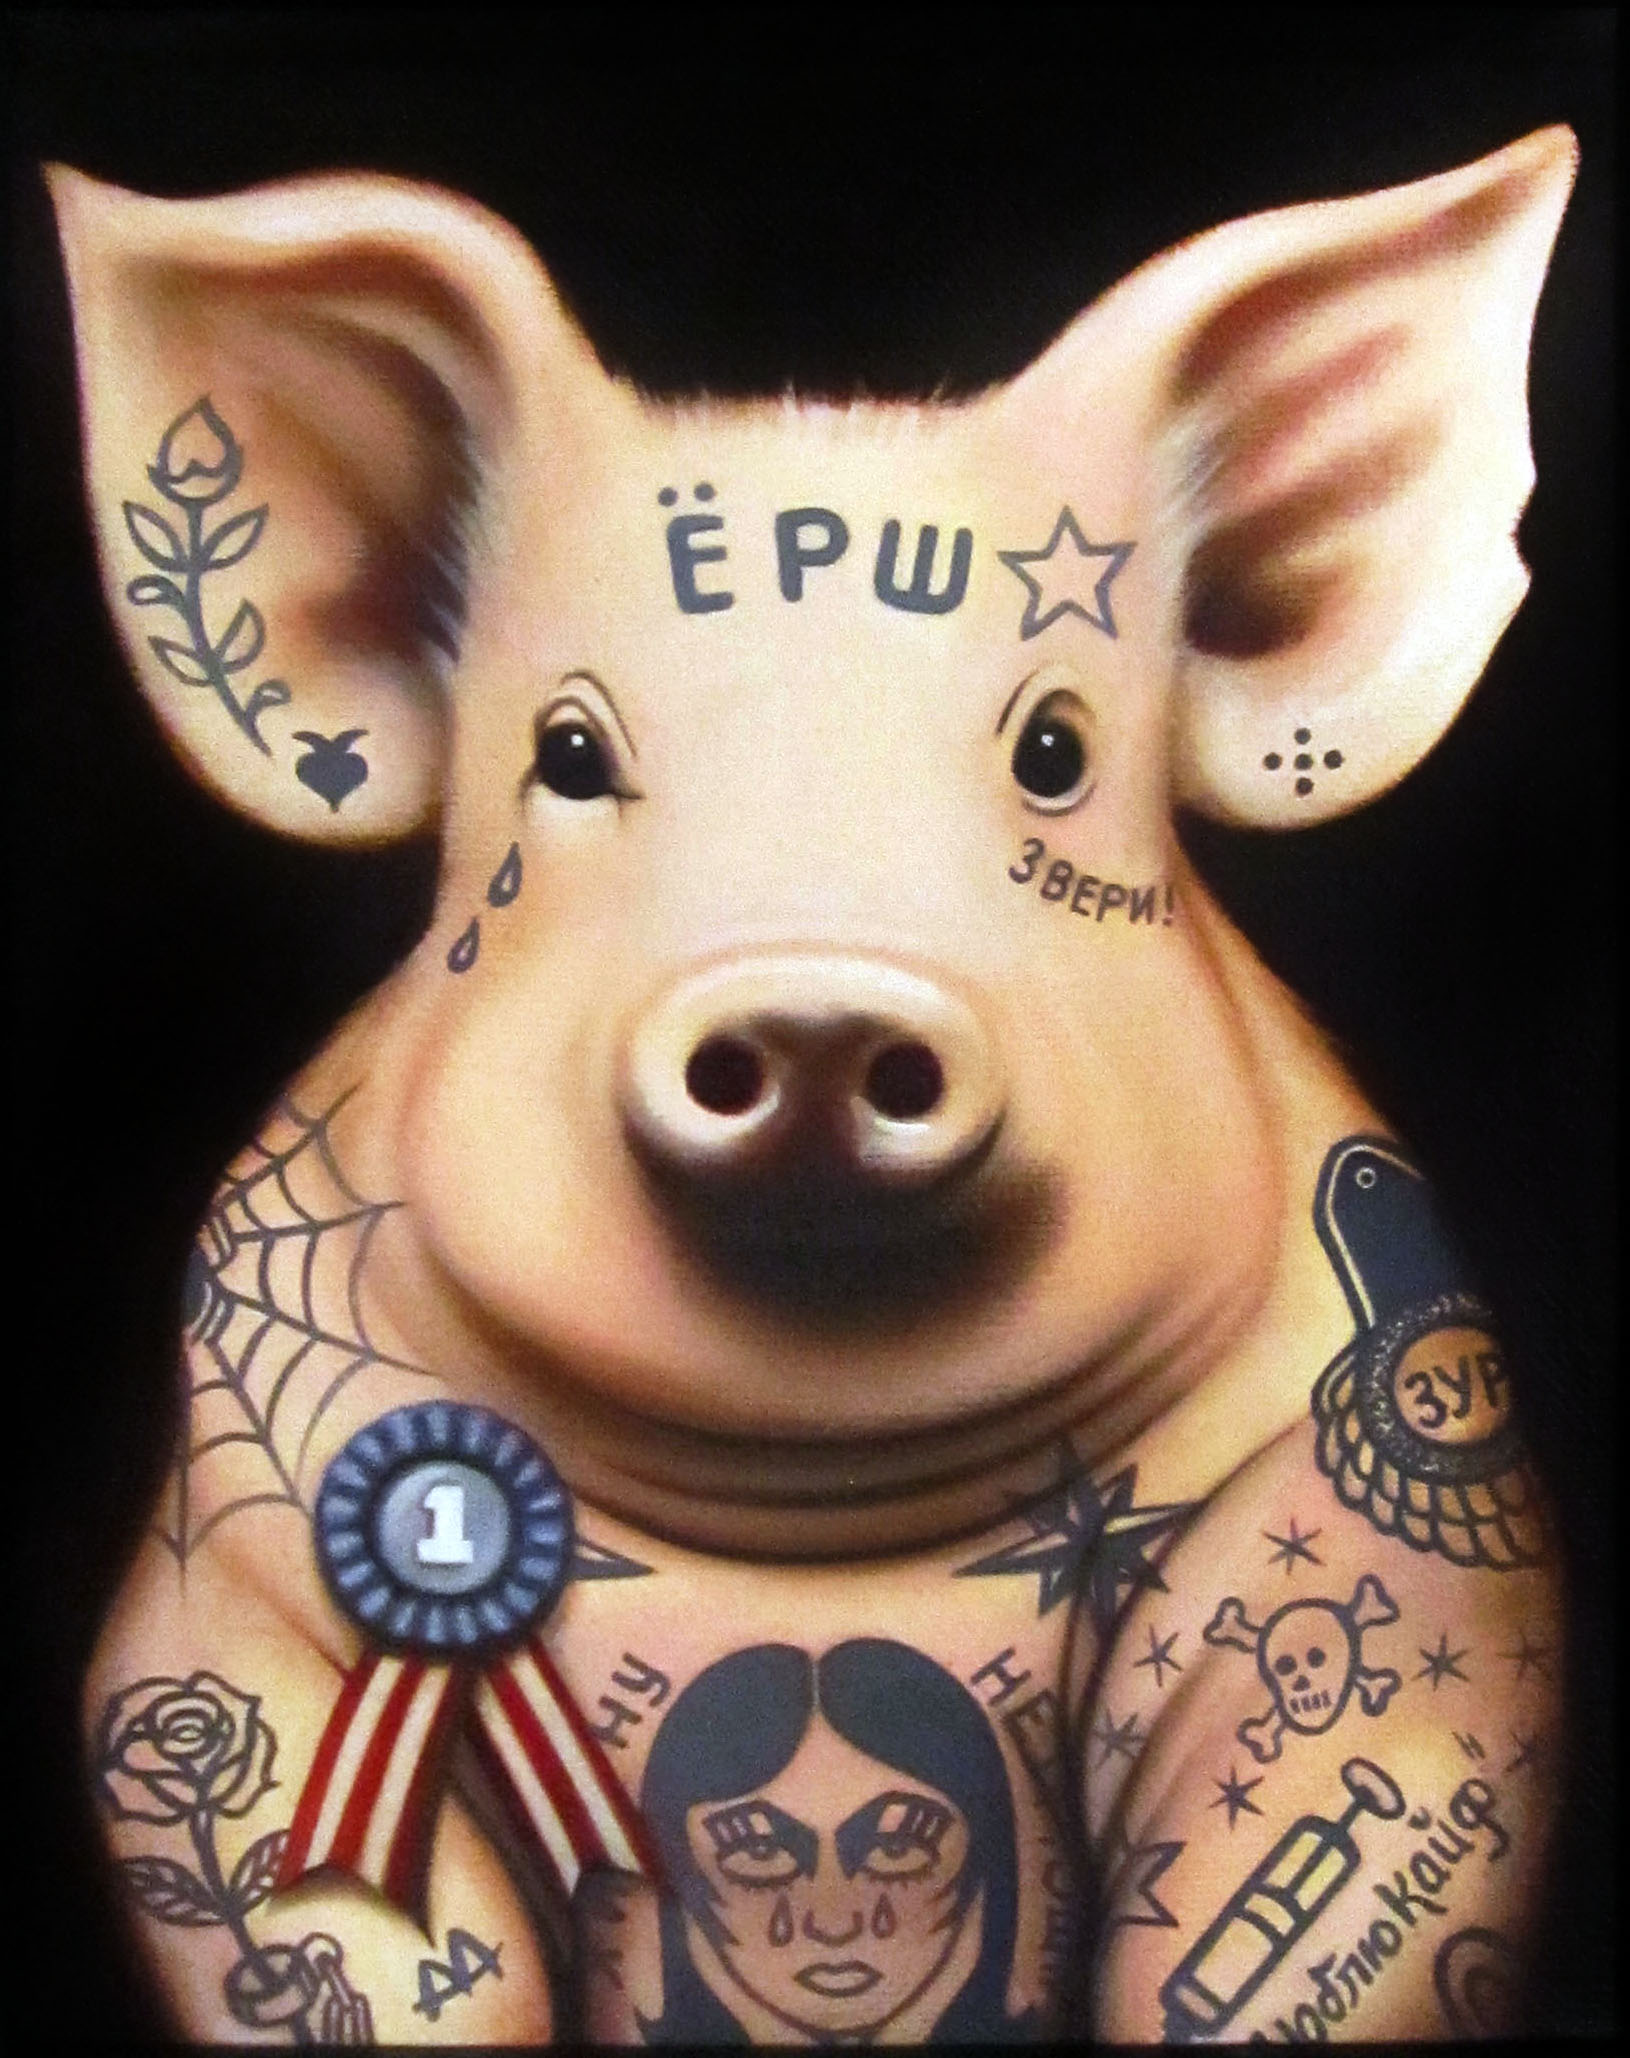 Wimsey the Tattooed Pig